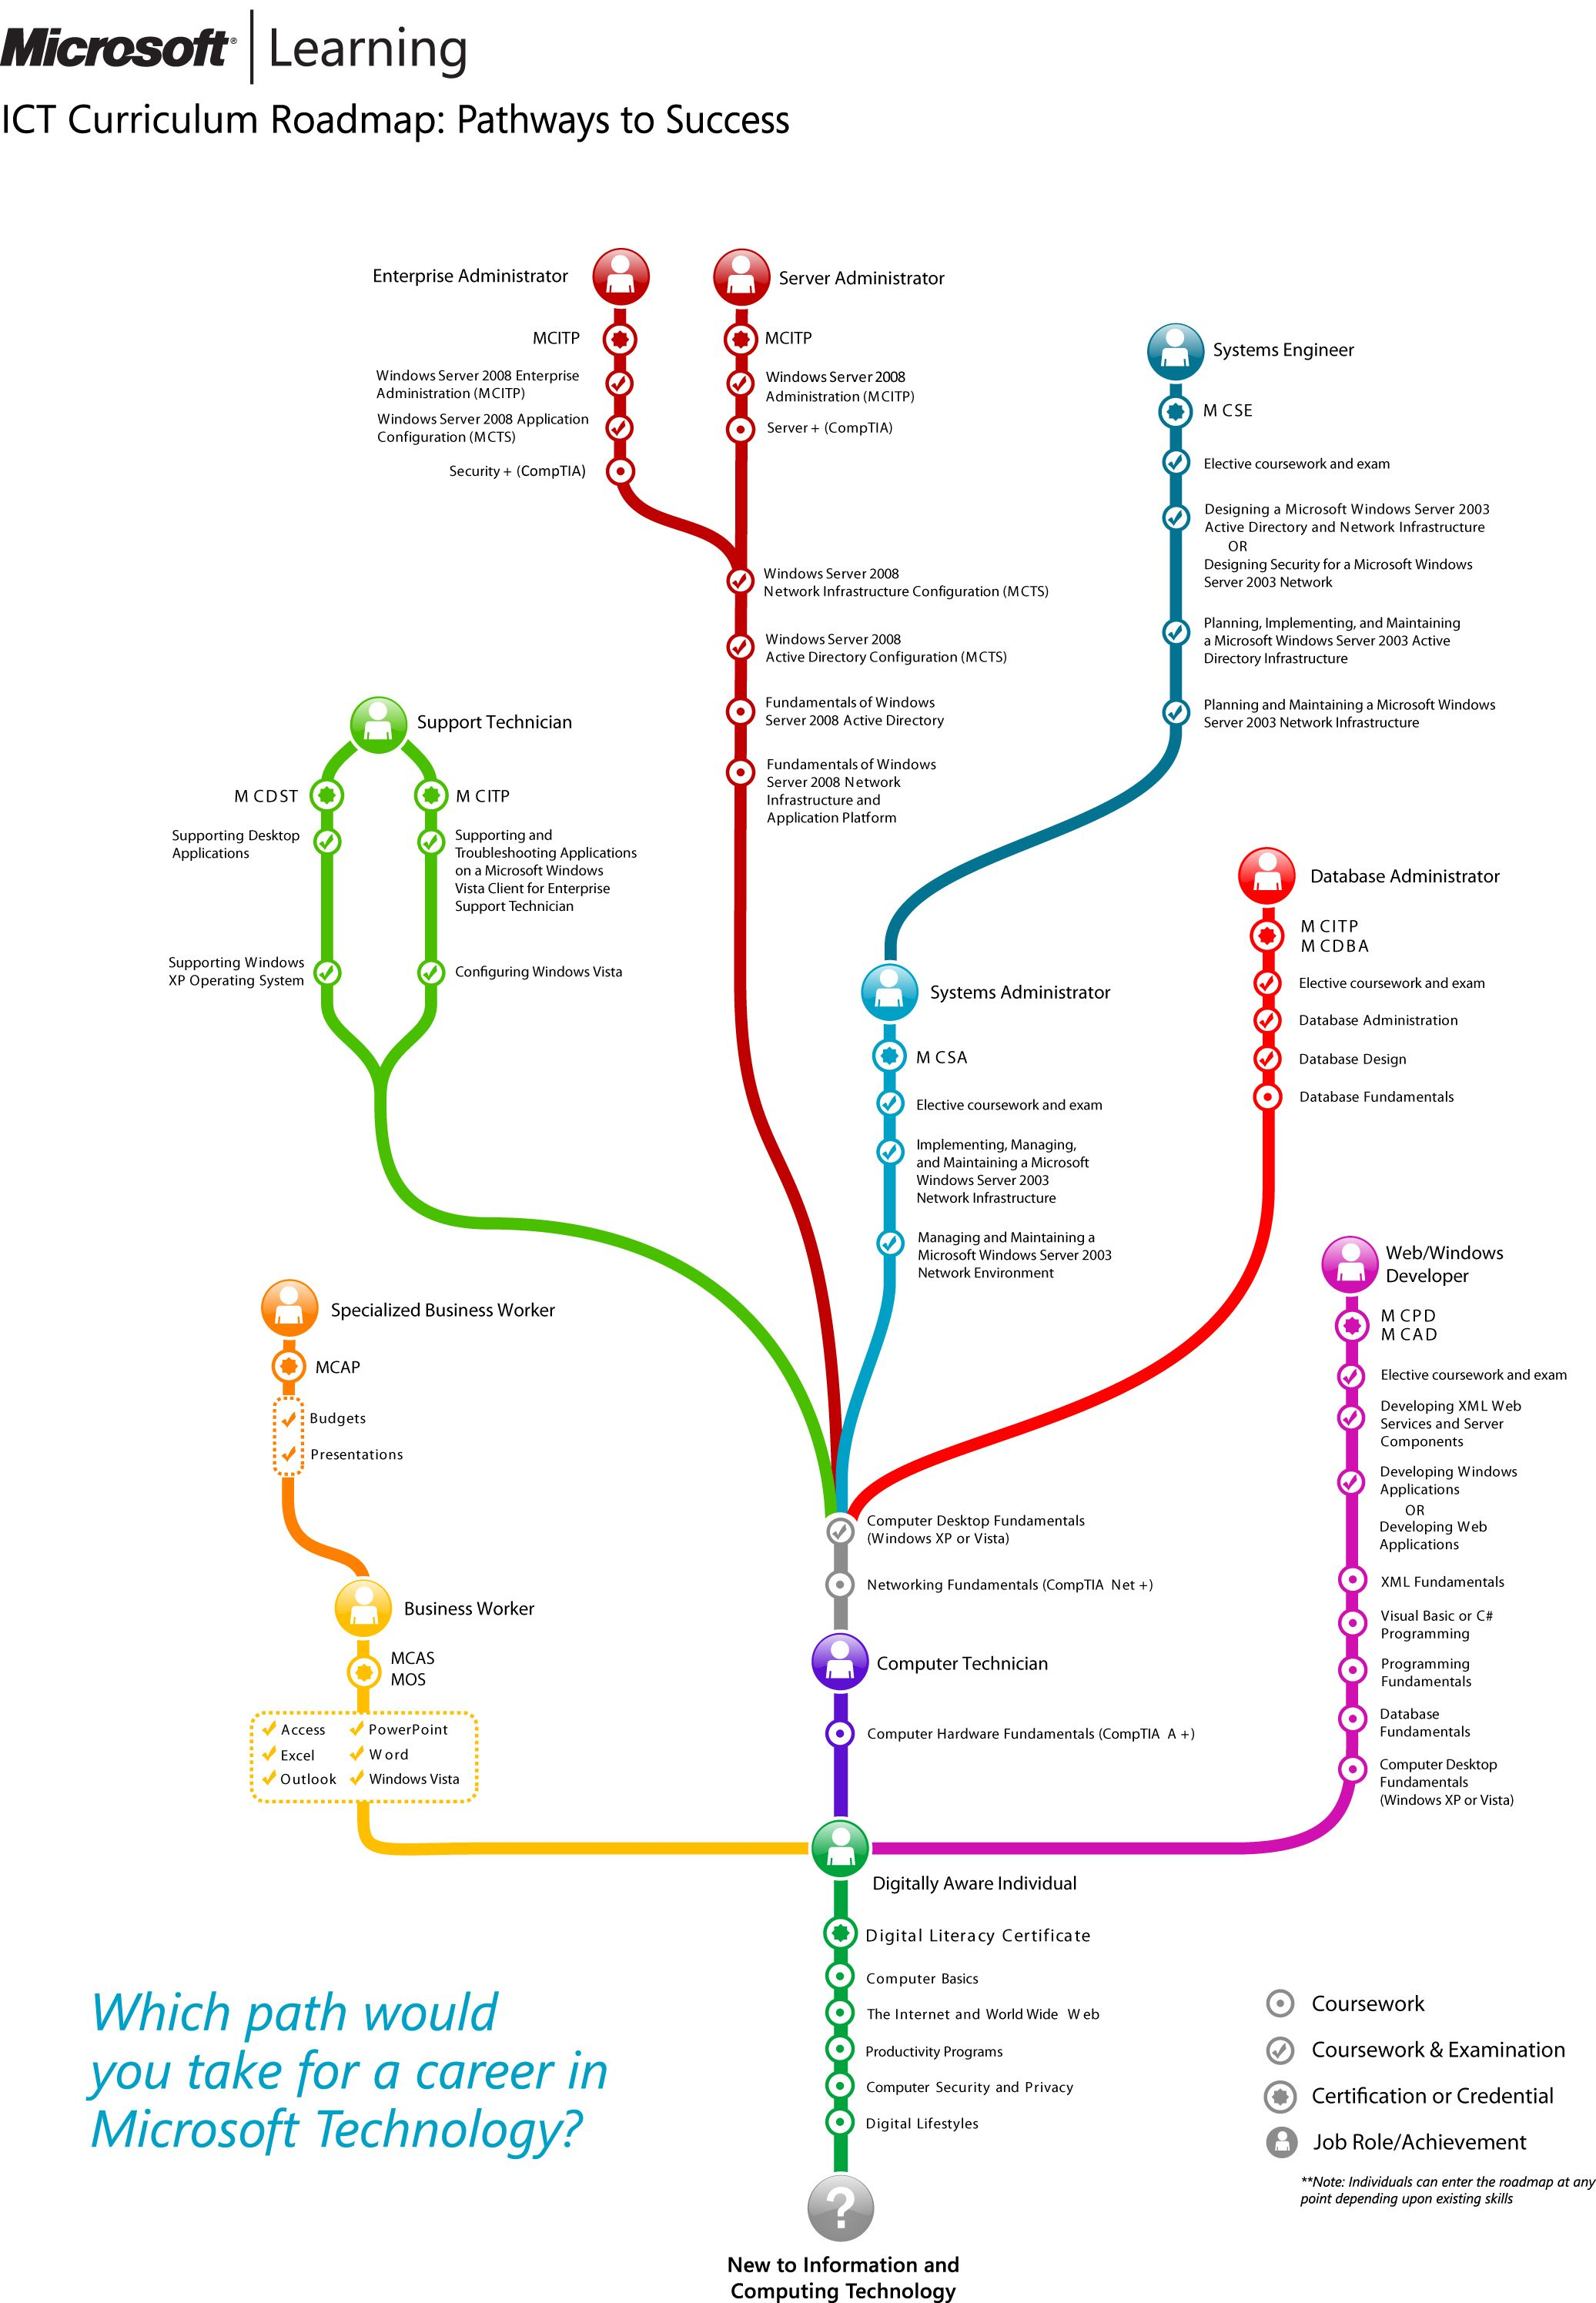 Which path would you take for a career in microsoft technology which path would you take for a career in microsoft technology ict curriculum roadmap xflitez Images